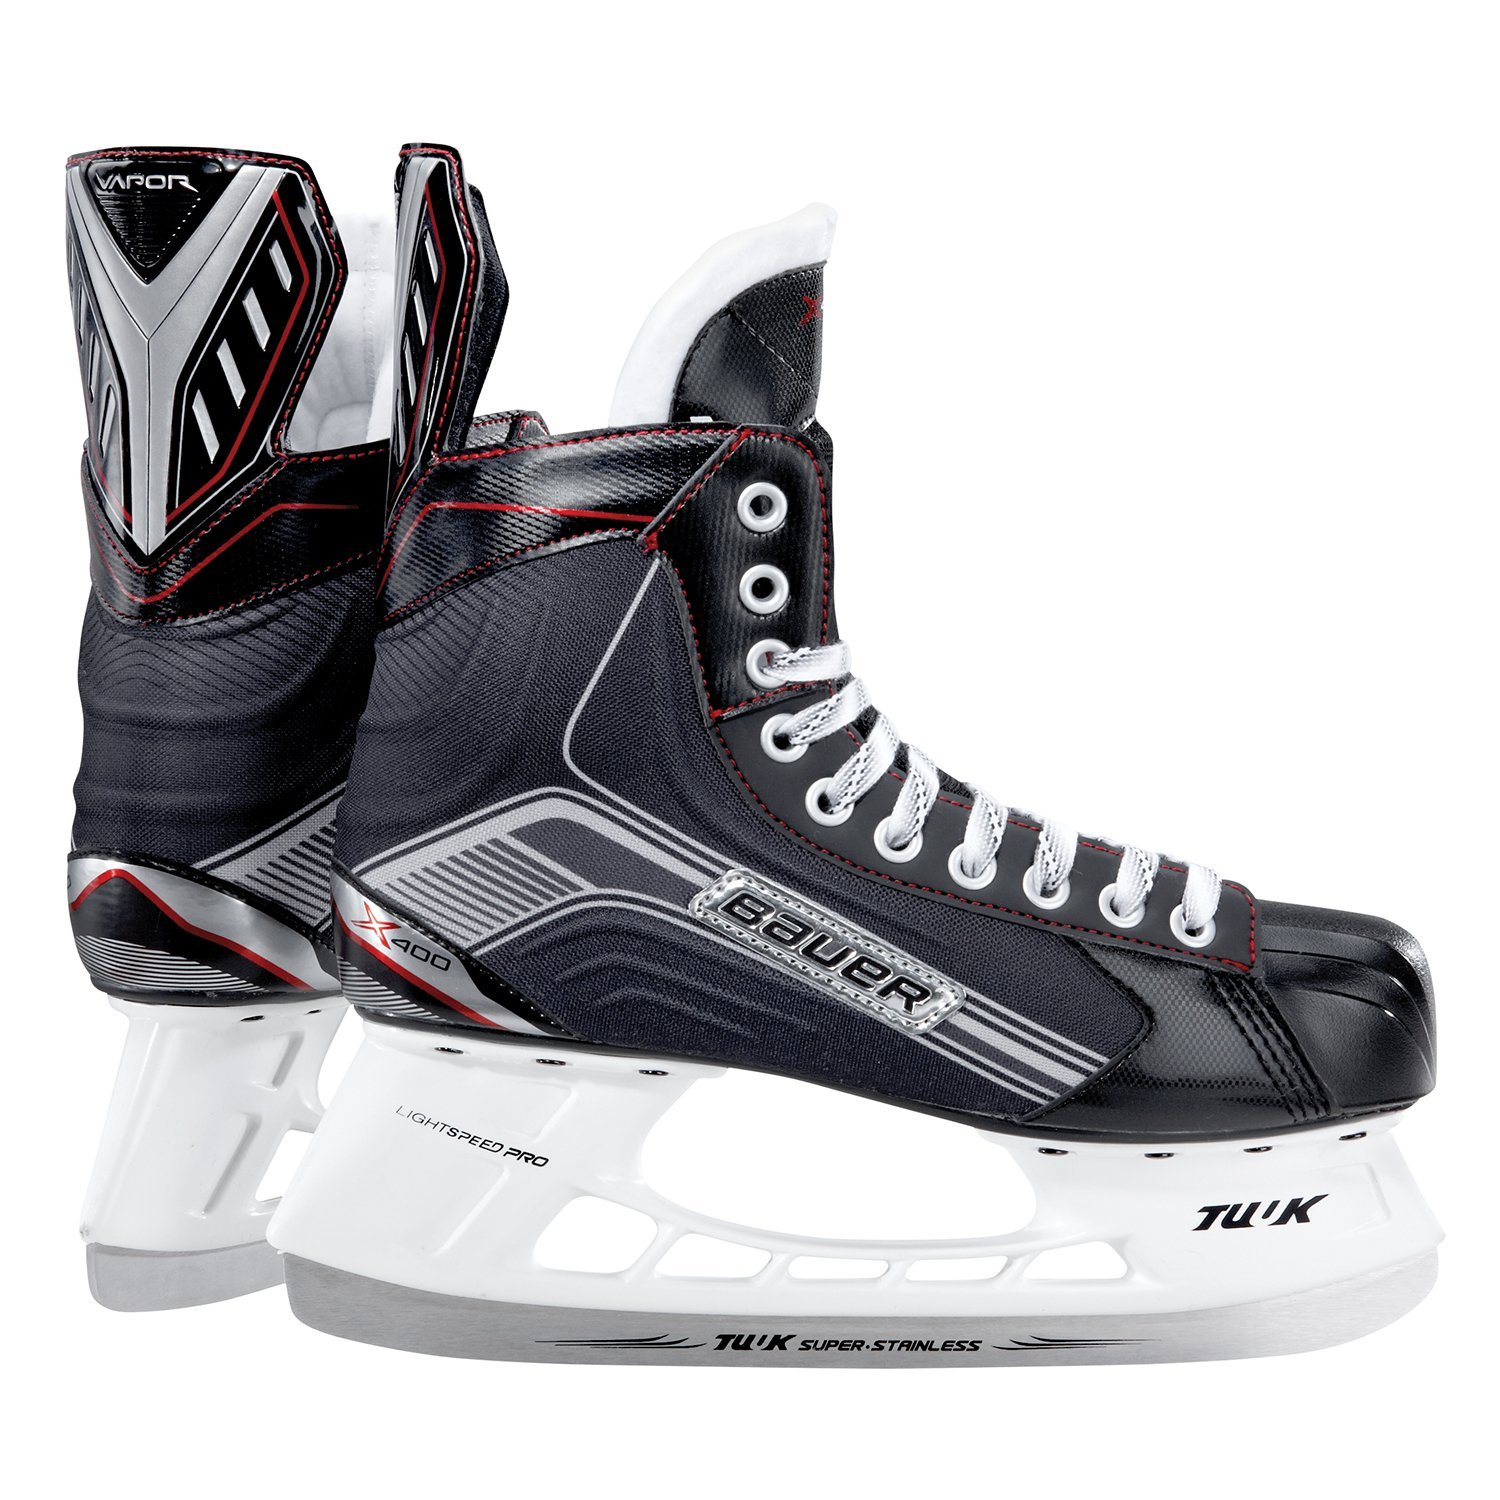 Bauer X400 Vapor Dynamic Speed Hockey Skates Mens Style: 1045935-blk D by Bauer